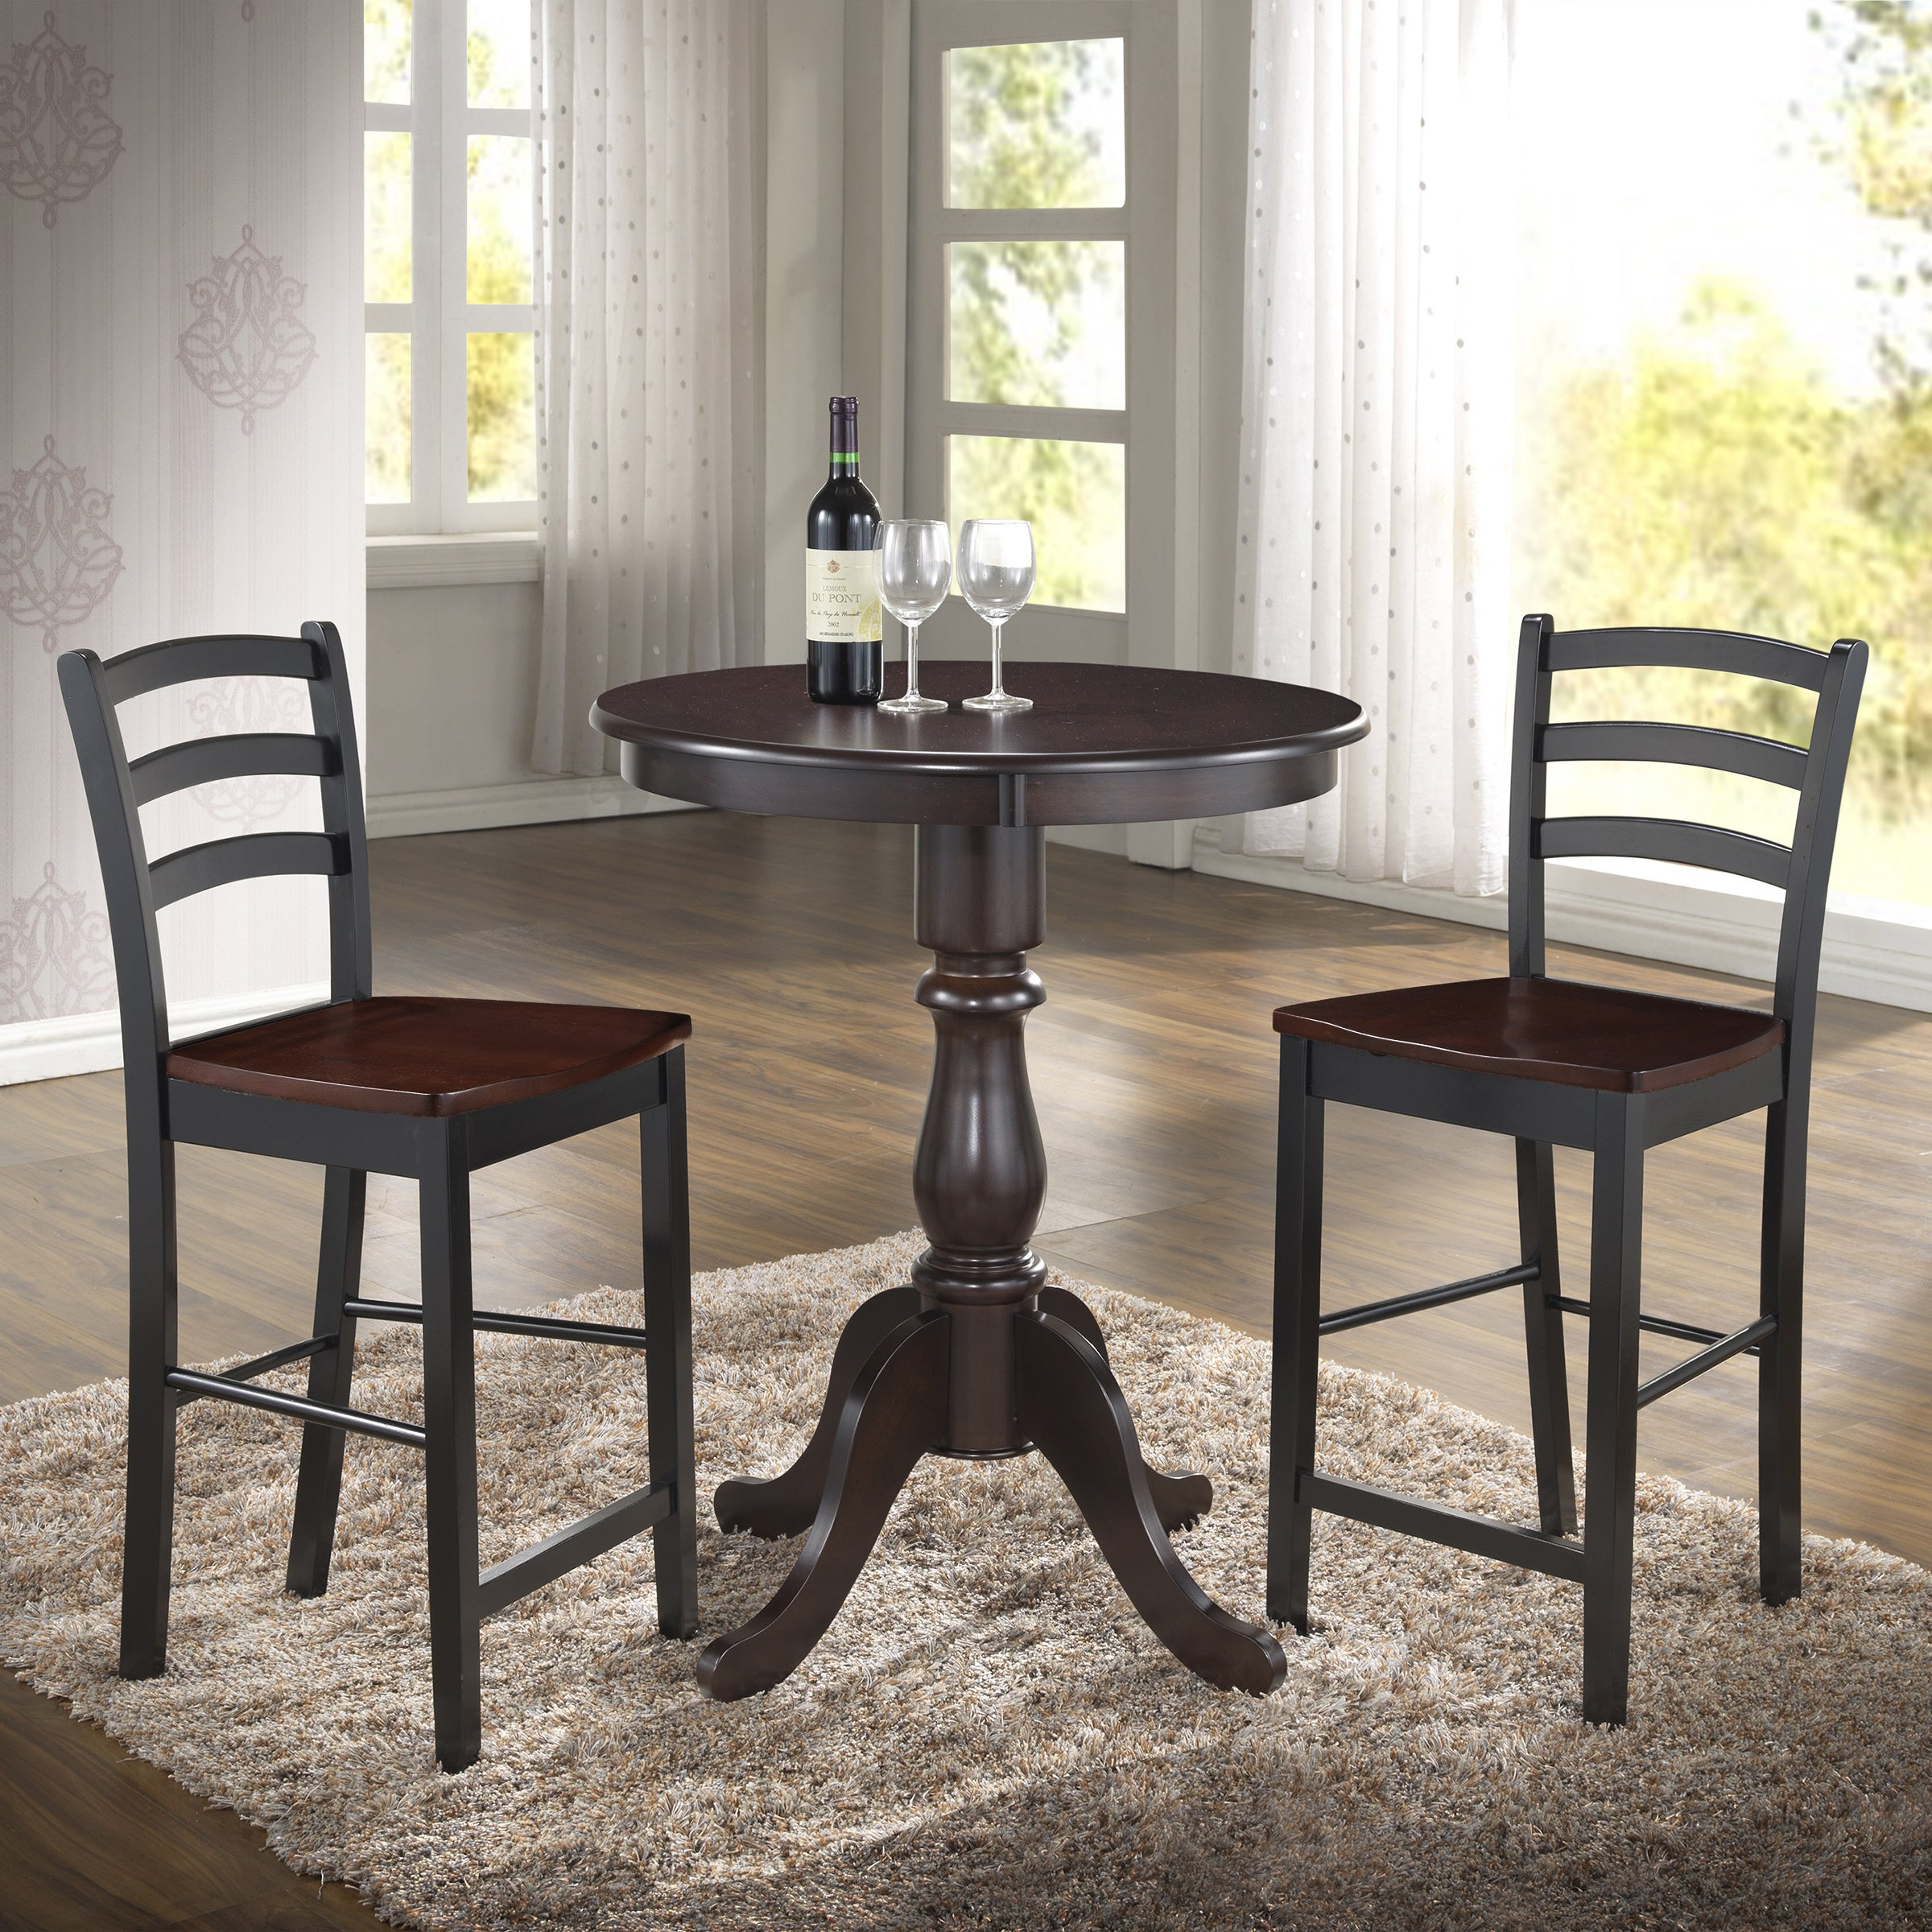 table kitchen inch tables pin armless pedestal chairs round for rustic ideas with exciting wood